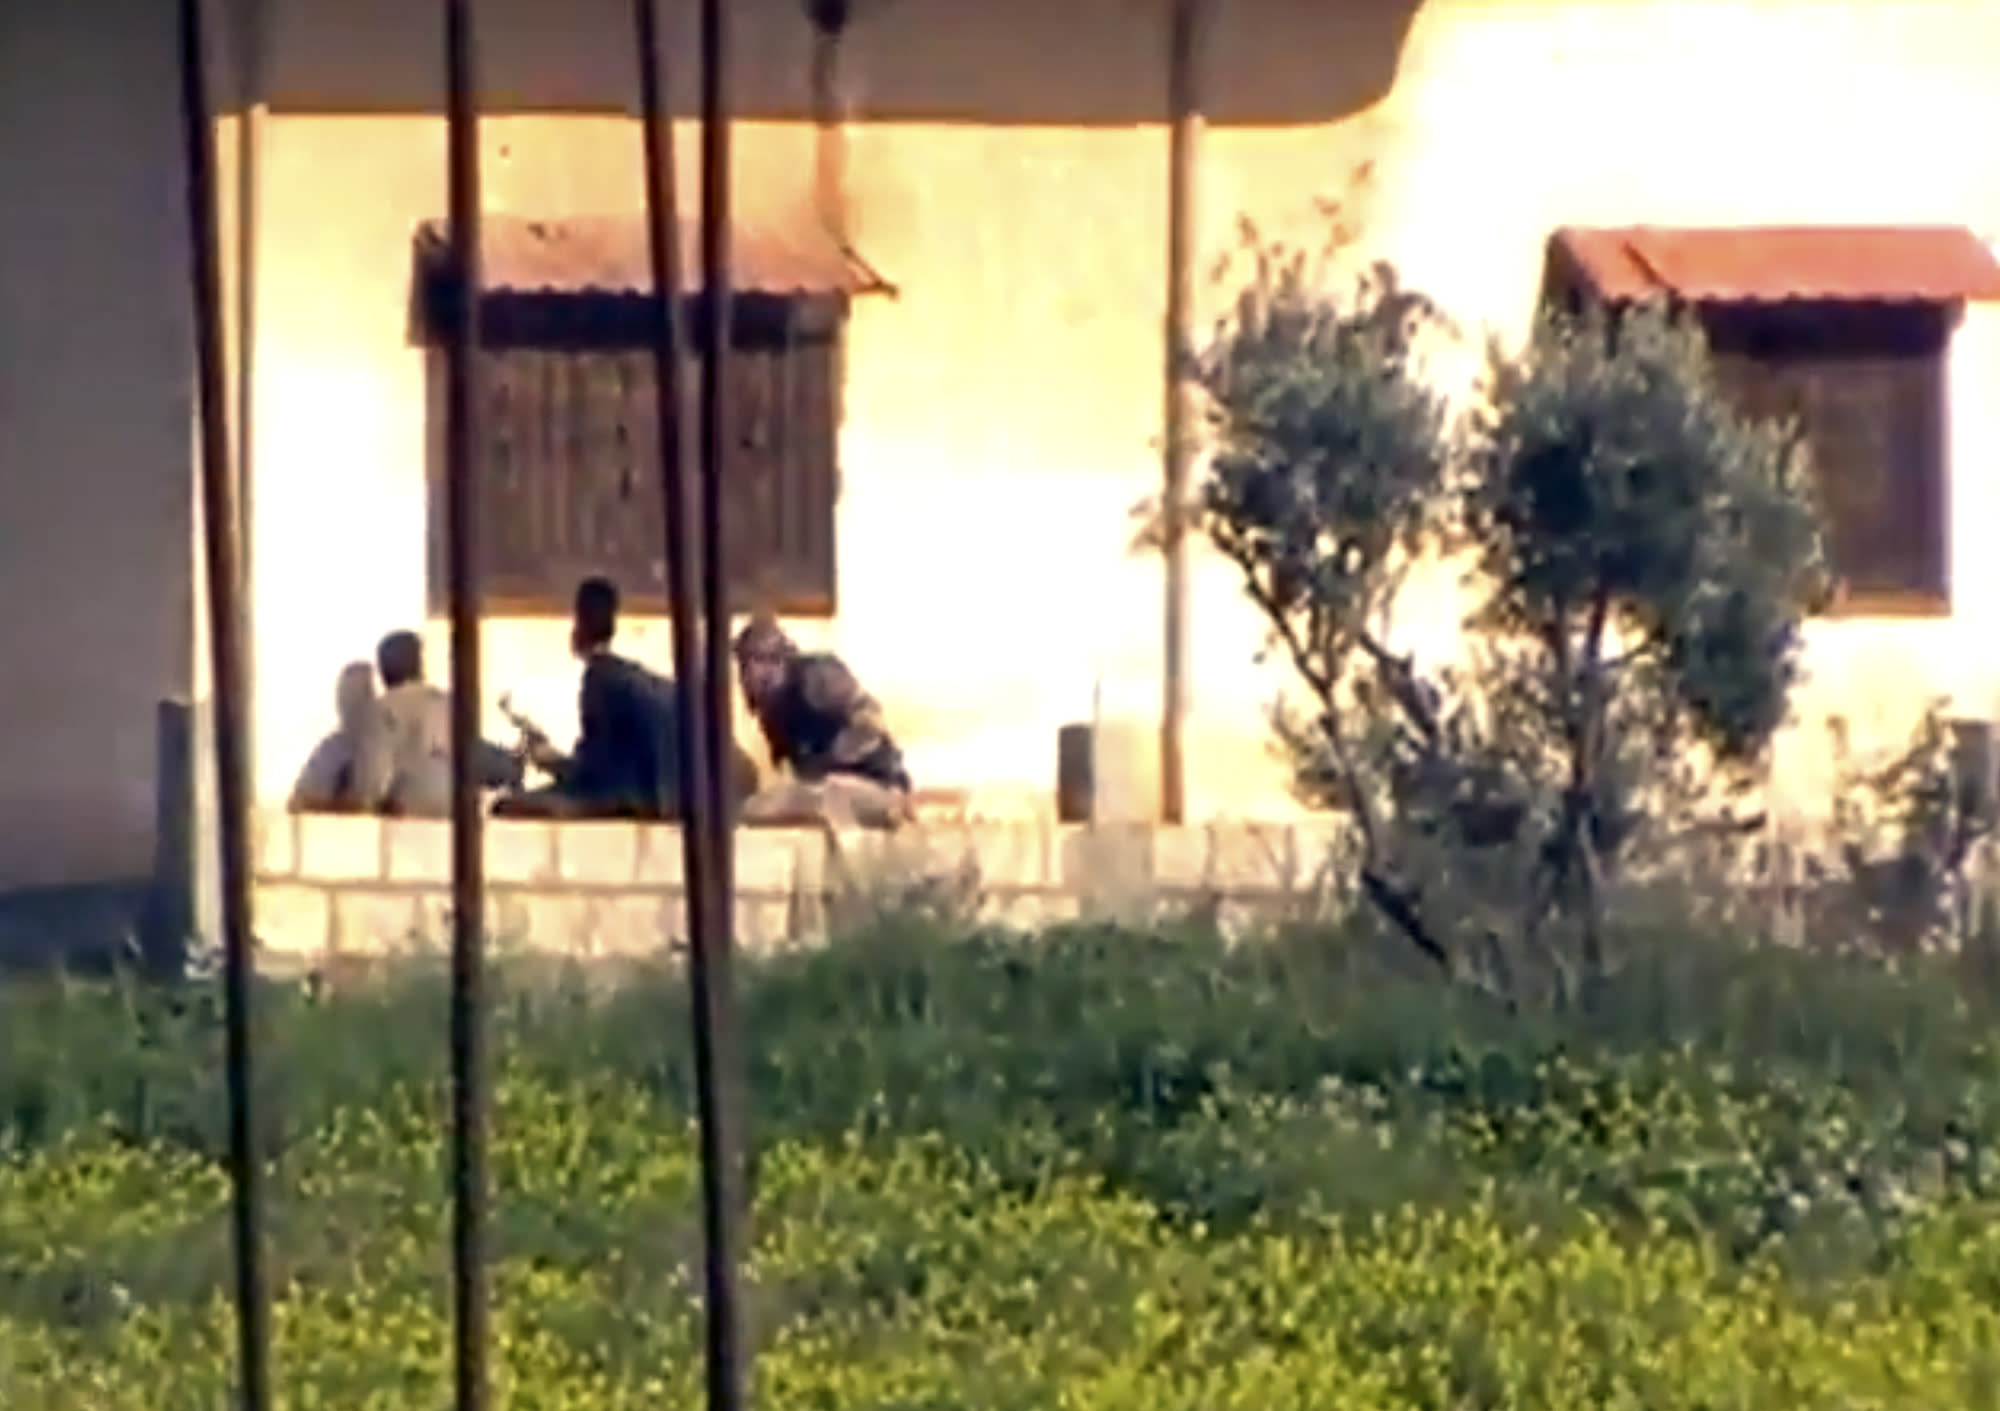 In this Thursday March 28, 2013 image taken from video obtained from the Shaam News Network, which has been authenticated based on its contents and other AP reporting, shows heavy clashes between Syrian Free Army fighters and the regime's army in Dael less than 15 kilometers (10 miles) from the Jordanian border in Daraa province, Syria. Syrian rebels on Friday captured a strategic town near the border with Jordan after a day of fierce clashes that killed dozens of people, activists said, as opposition fighters expand their presence in the south, considered a gateway to Damascus. (AP Photo/Shaam News Network via AP video)